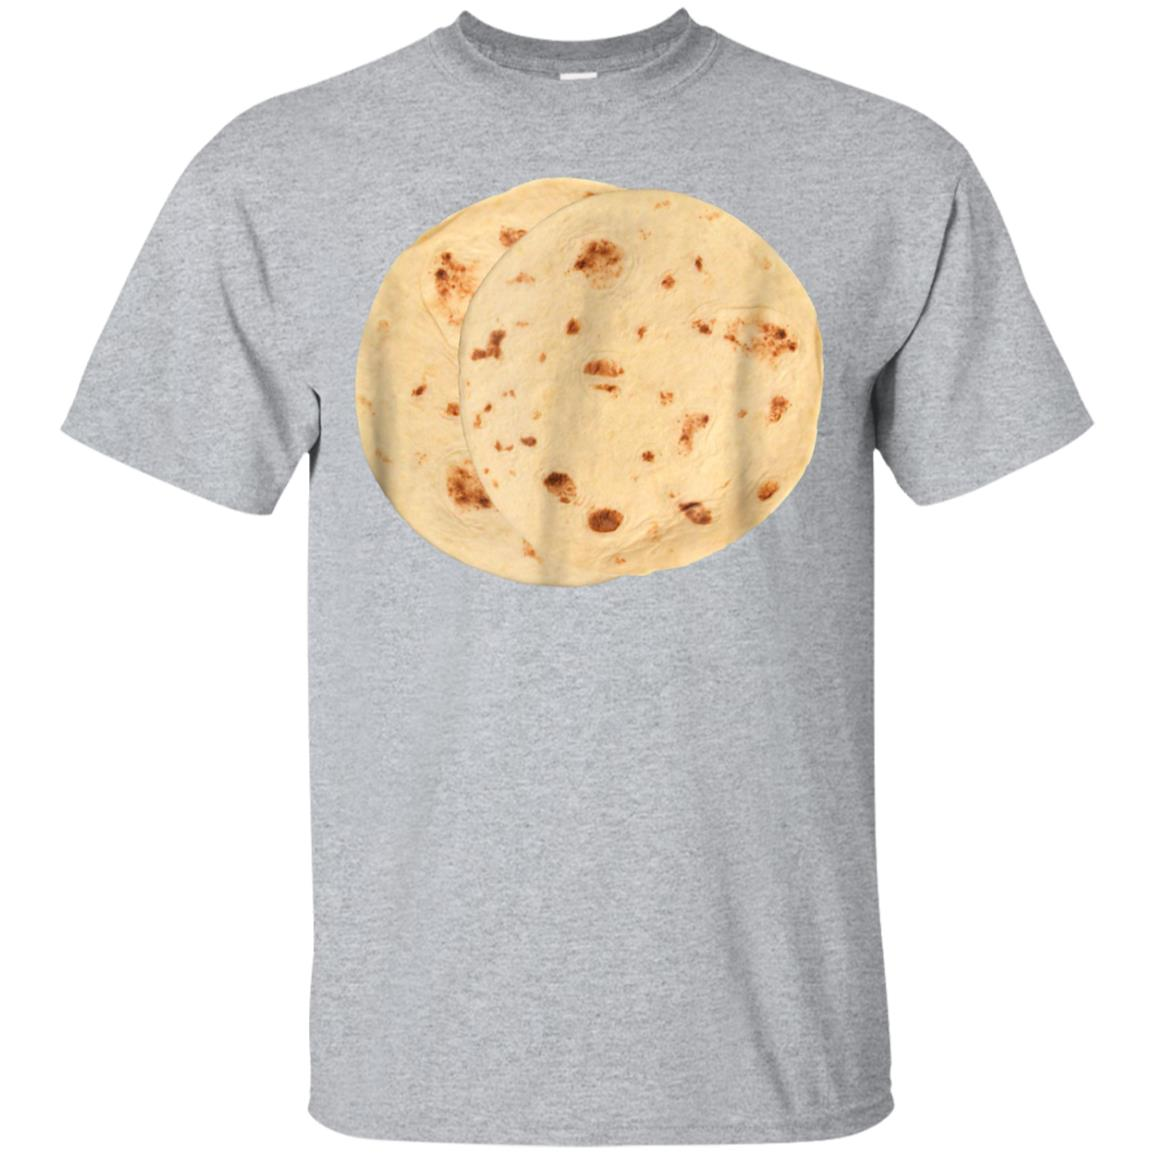 Flour Tortillas Funny T-Shirt Mexican Food Foodie Harina 99promocode